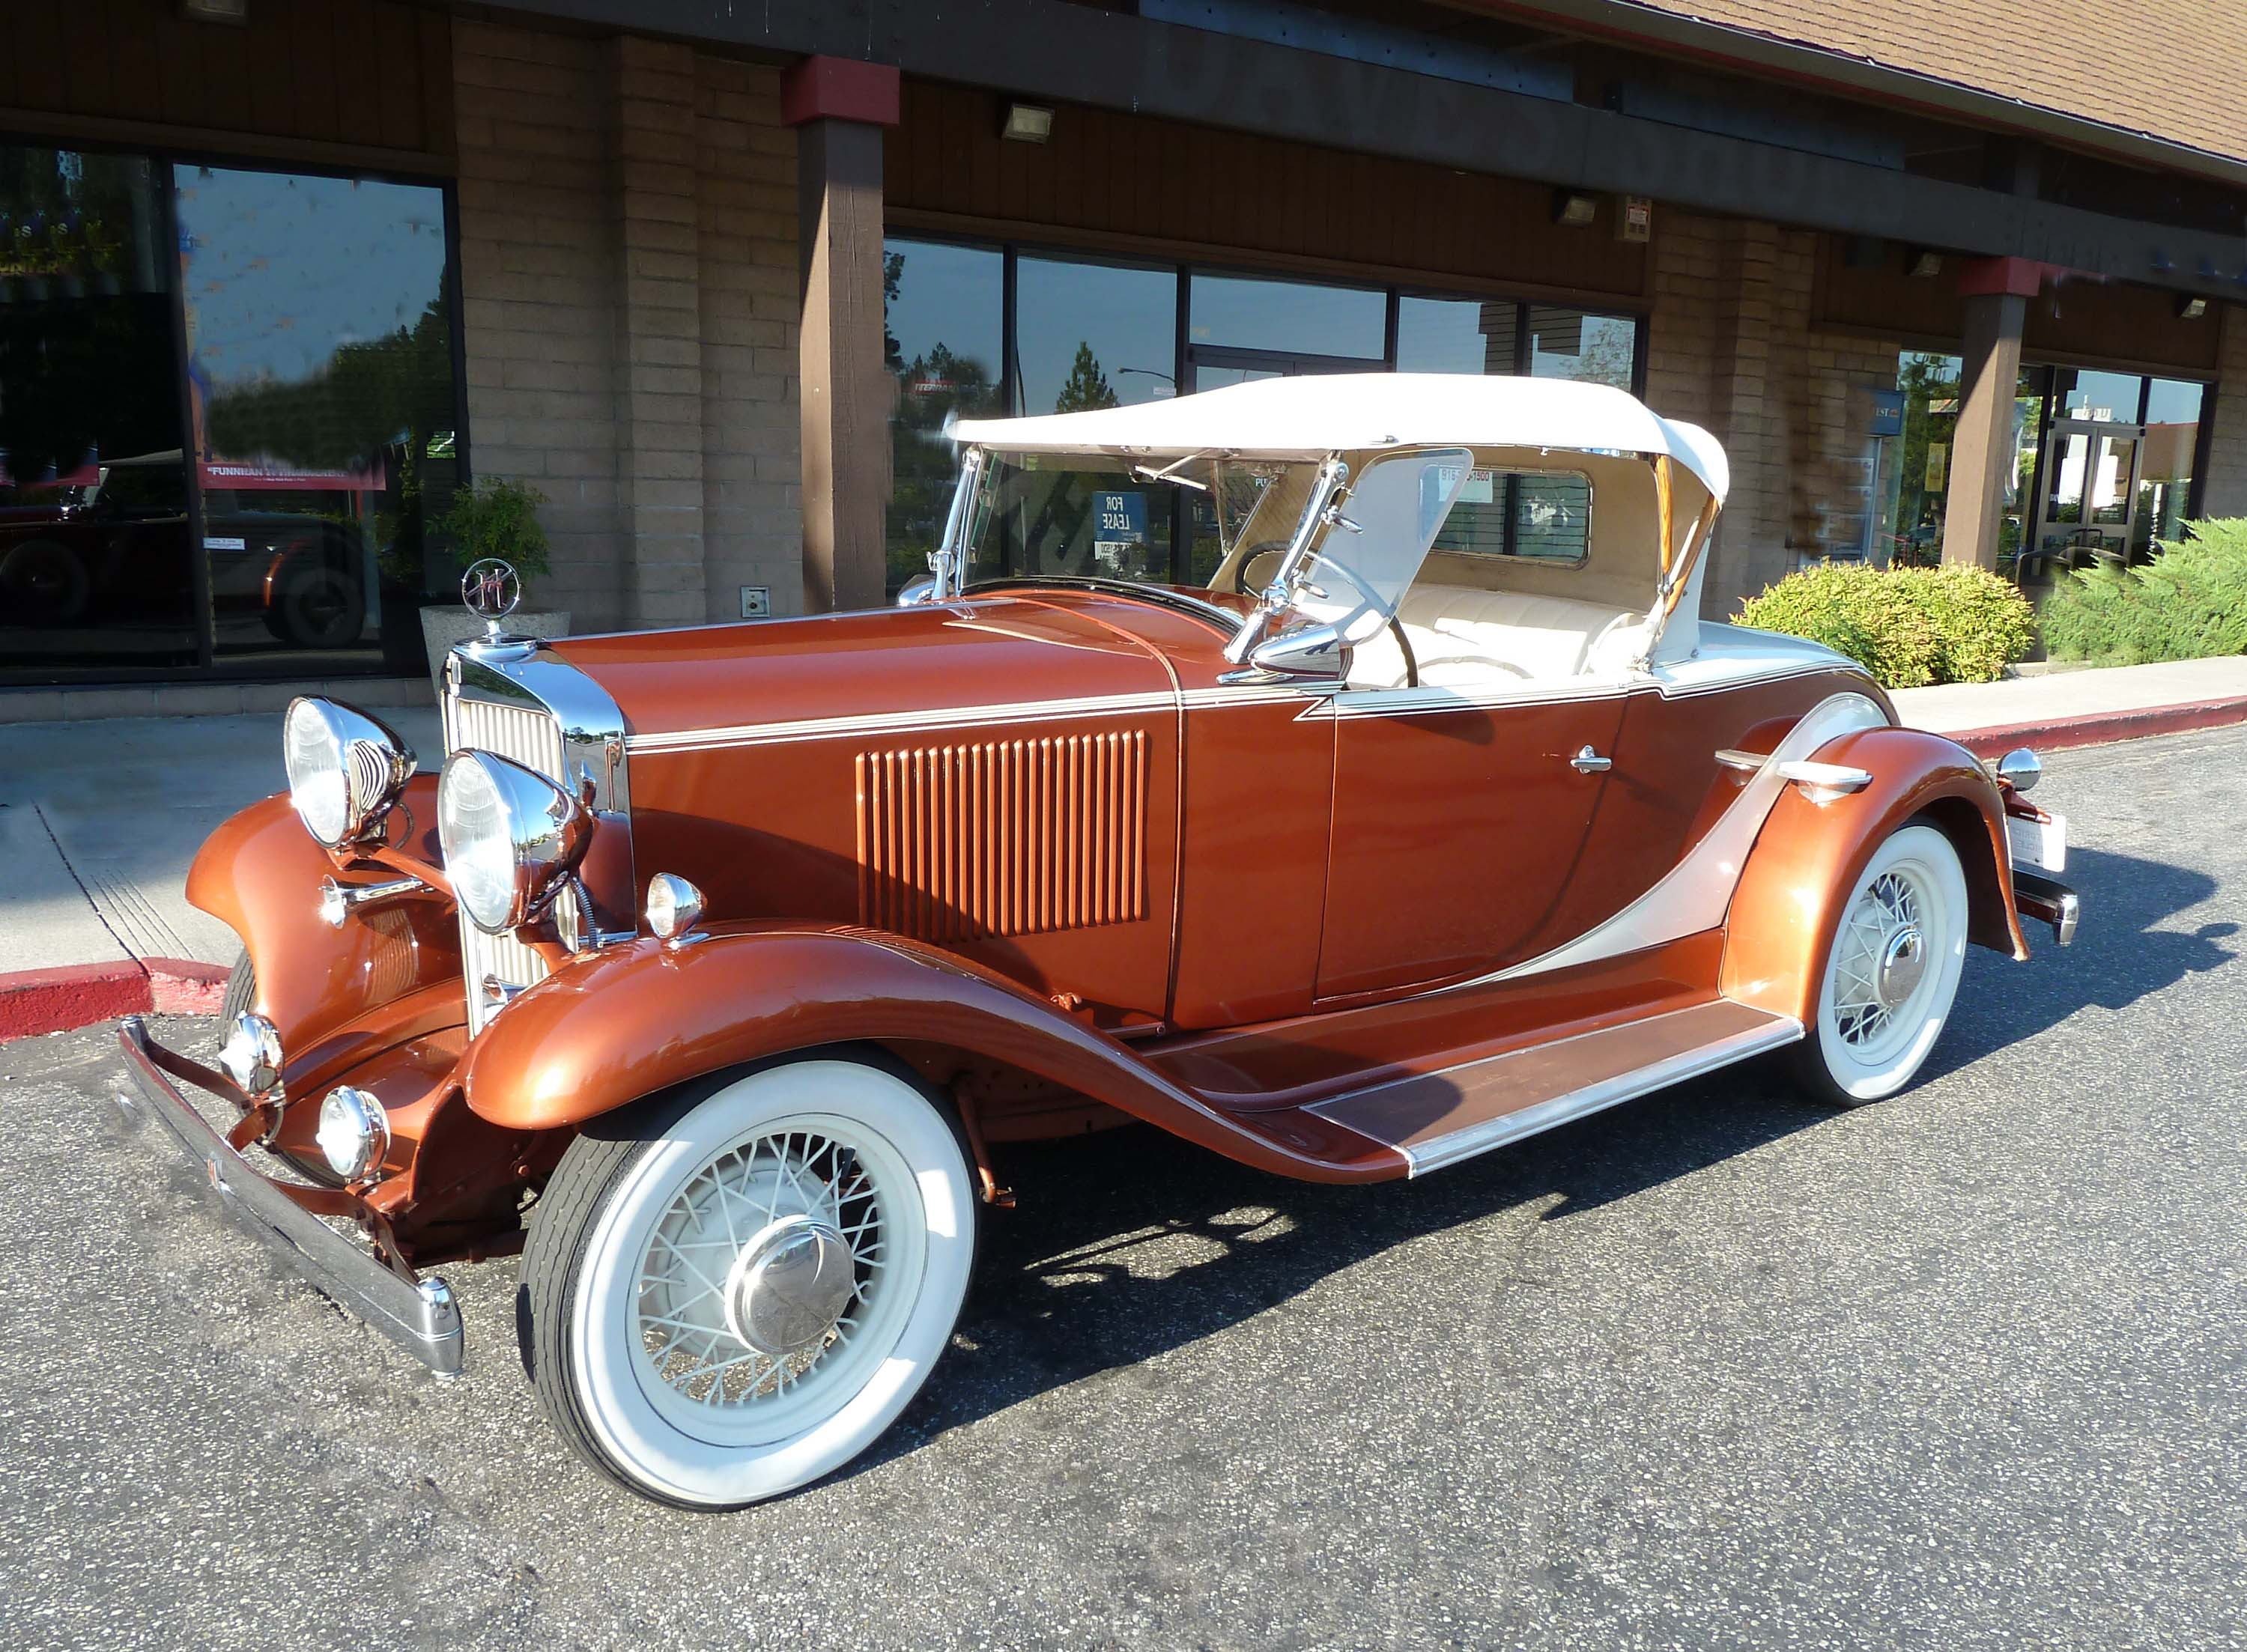 1933 Hupmobile K-321 Convertible Coupe | HowStuffWorks